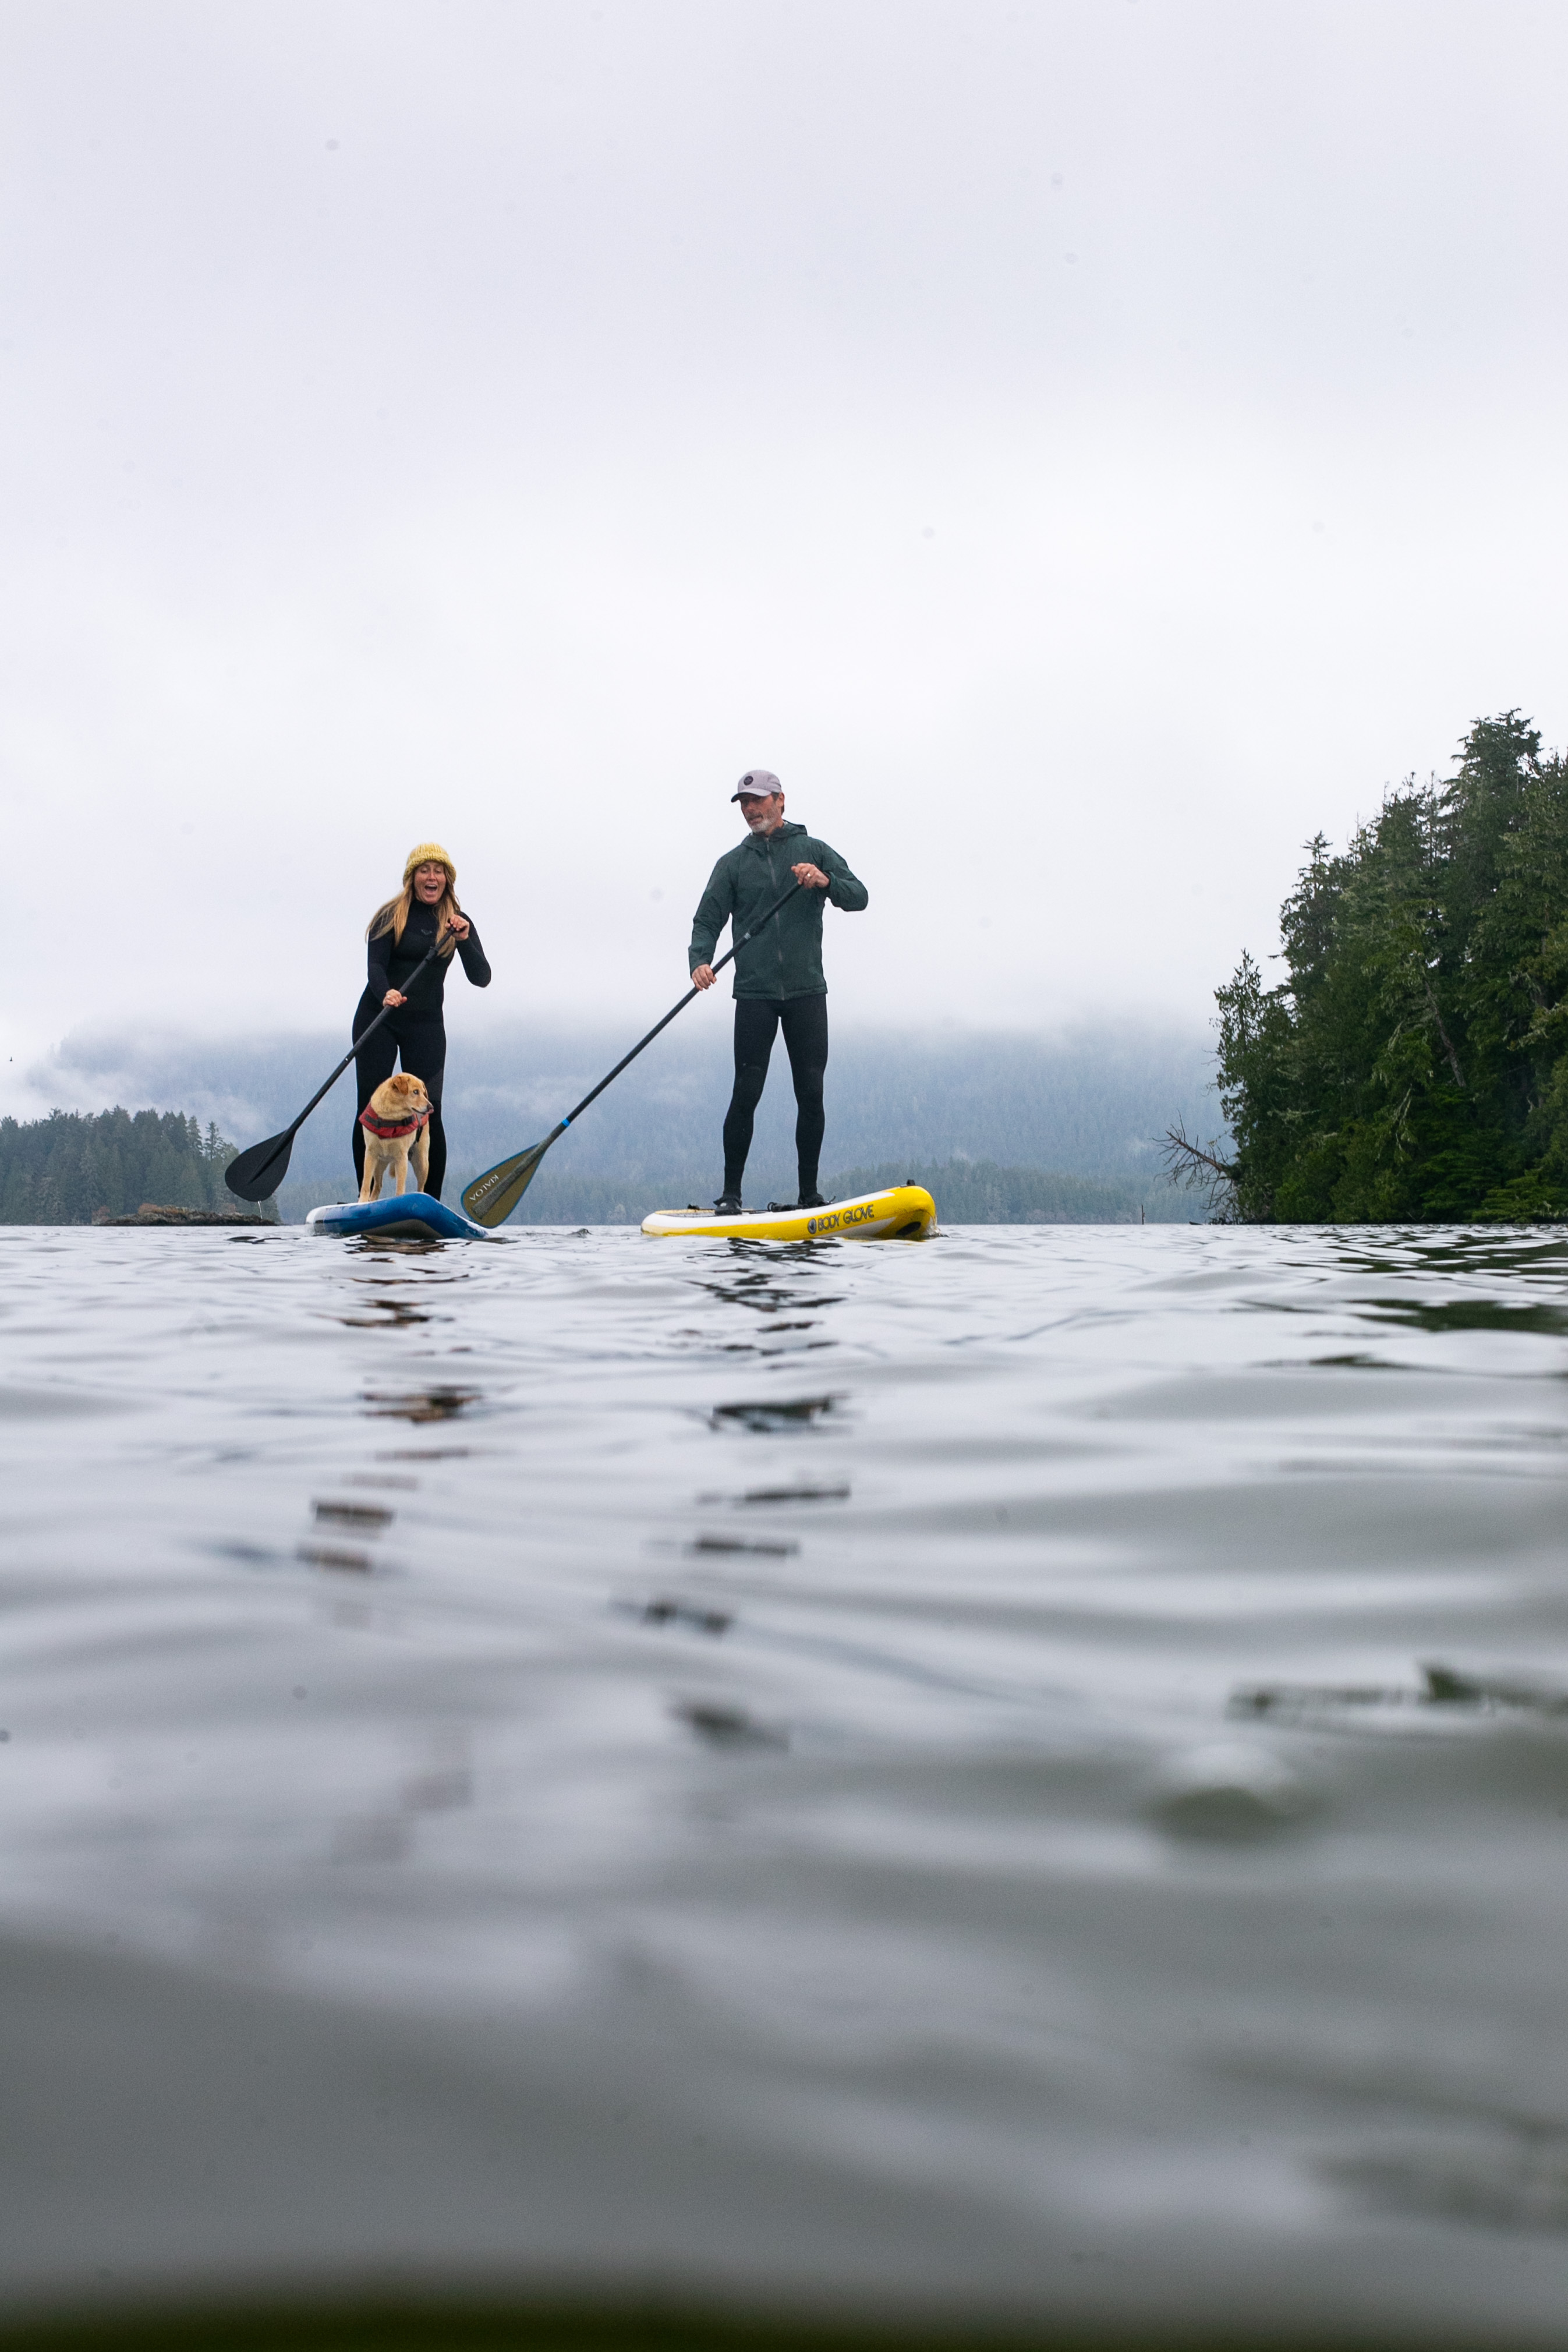 Have an adventure paddling in Tofino!